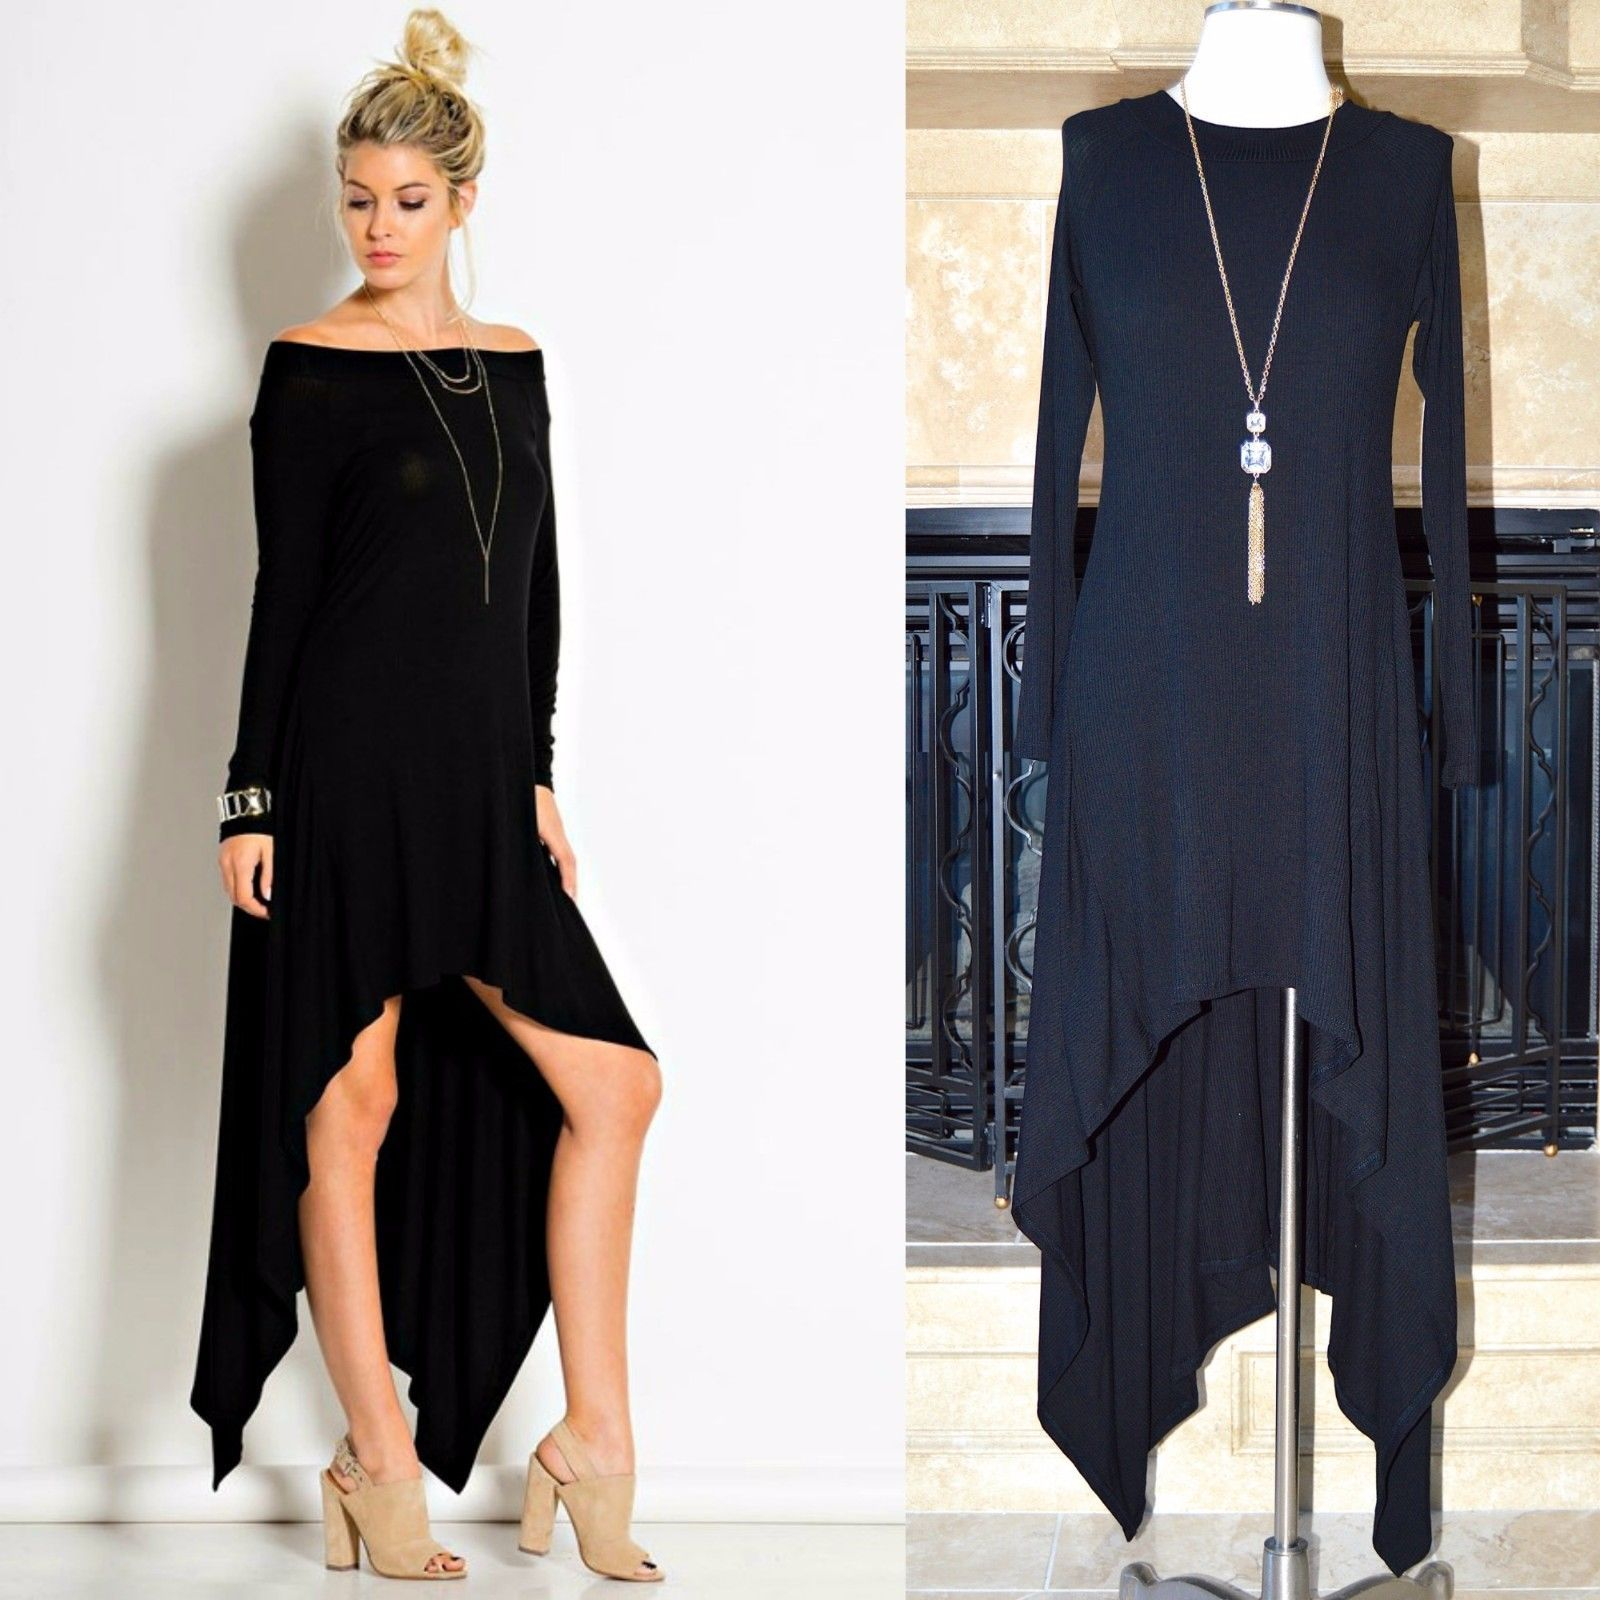 Long Sleeve On Off Shoulder Hi Low Flowy Swing Maxi Dress Or Tunic Top Black S L